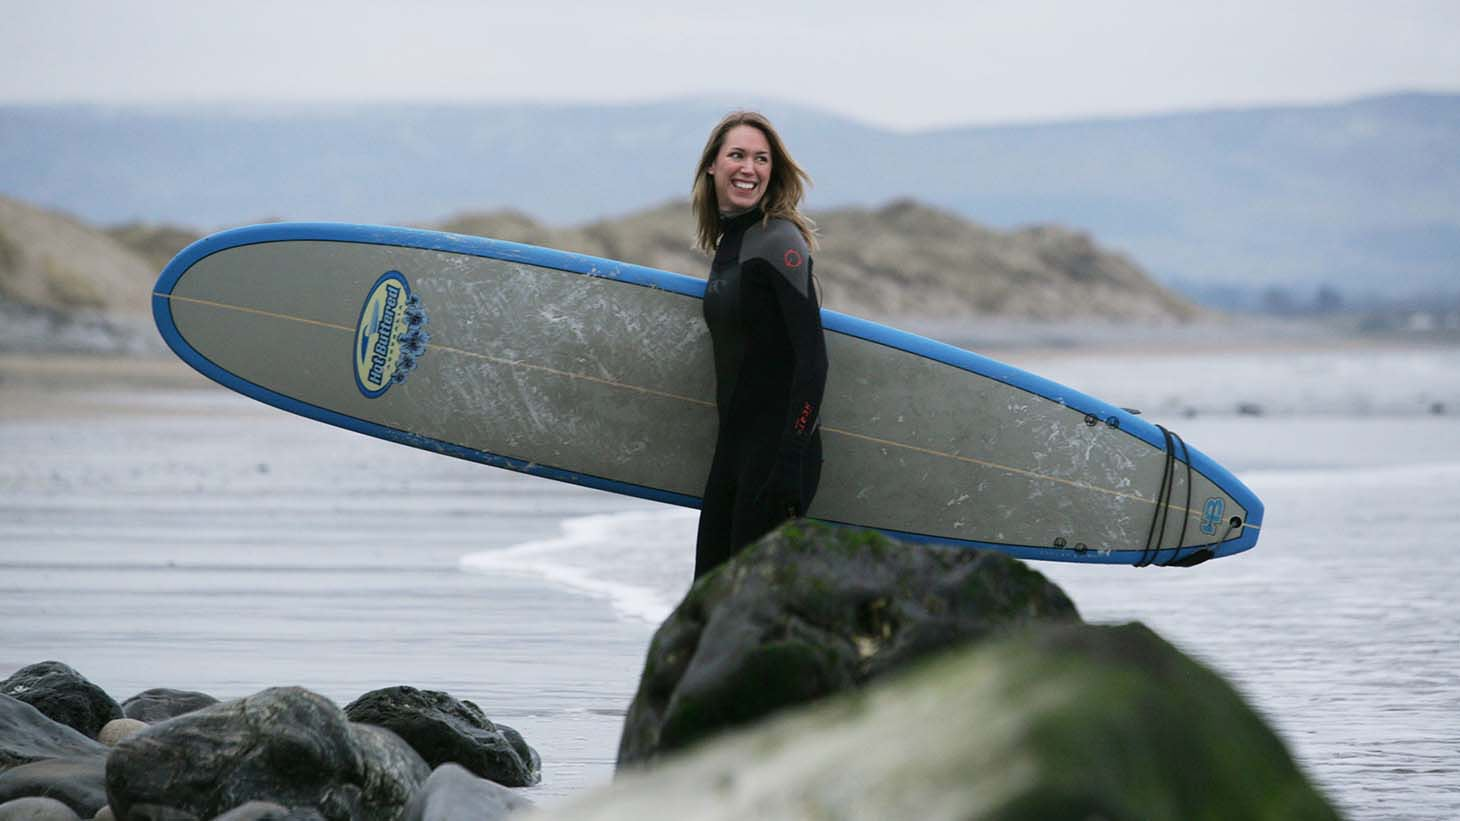 Enniscrone Beach is the ideal destination for the beginner surfer.